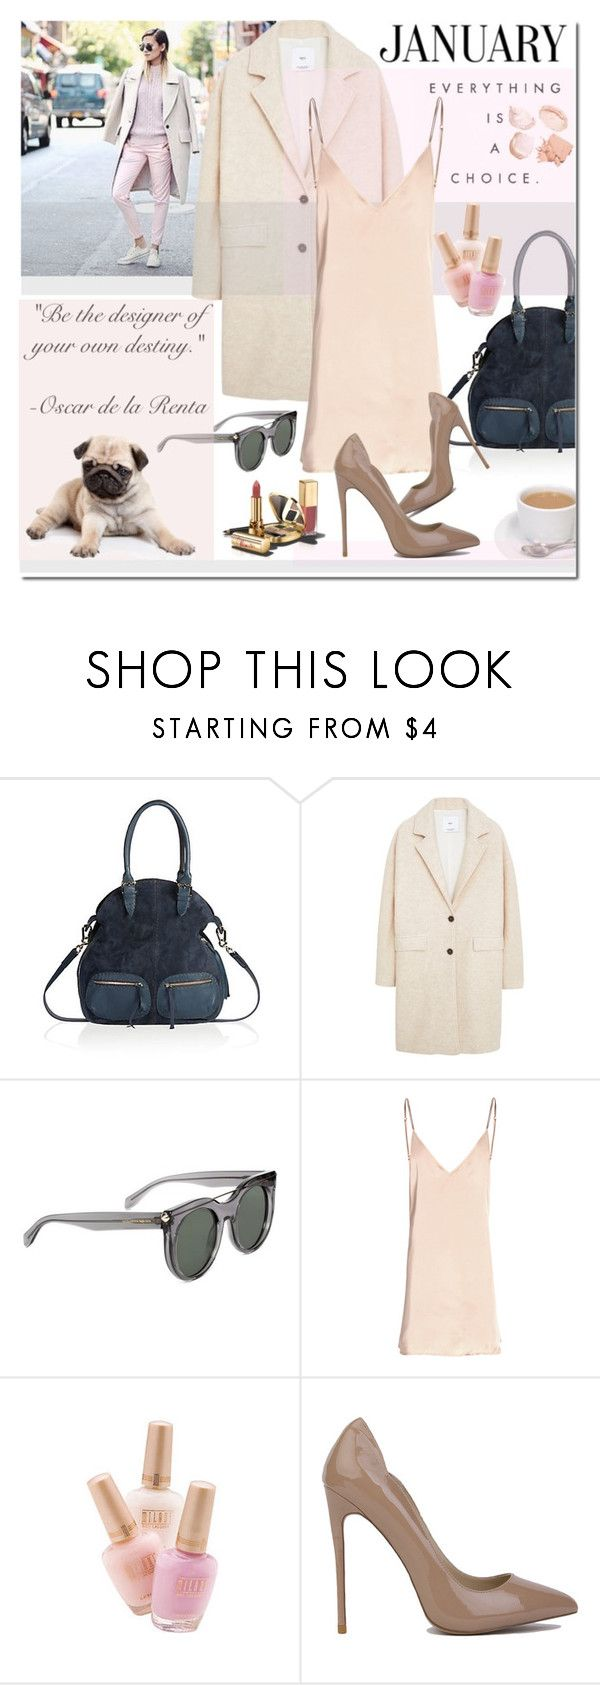 """Untitled #1273"" by elena-starling ❤ liked on Polyvore featuring Miu Miu, Overland Sheepskin Co., MANGO, Alexander McQueen, Dolce&Gabbana, Akira, women's clothing, women's fashion, women and female"